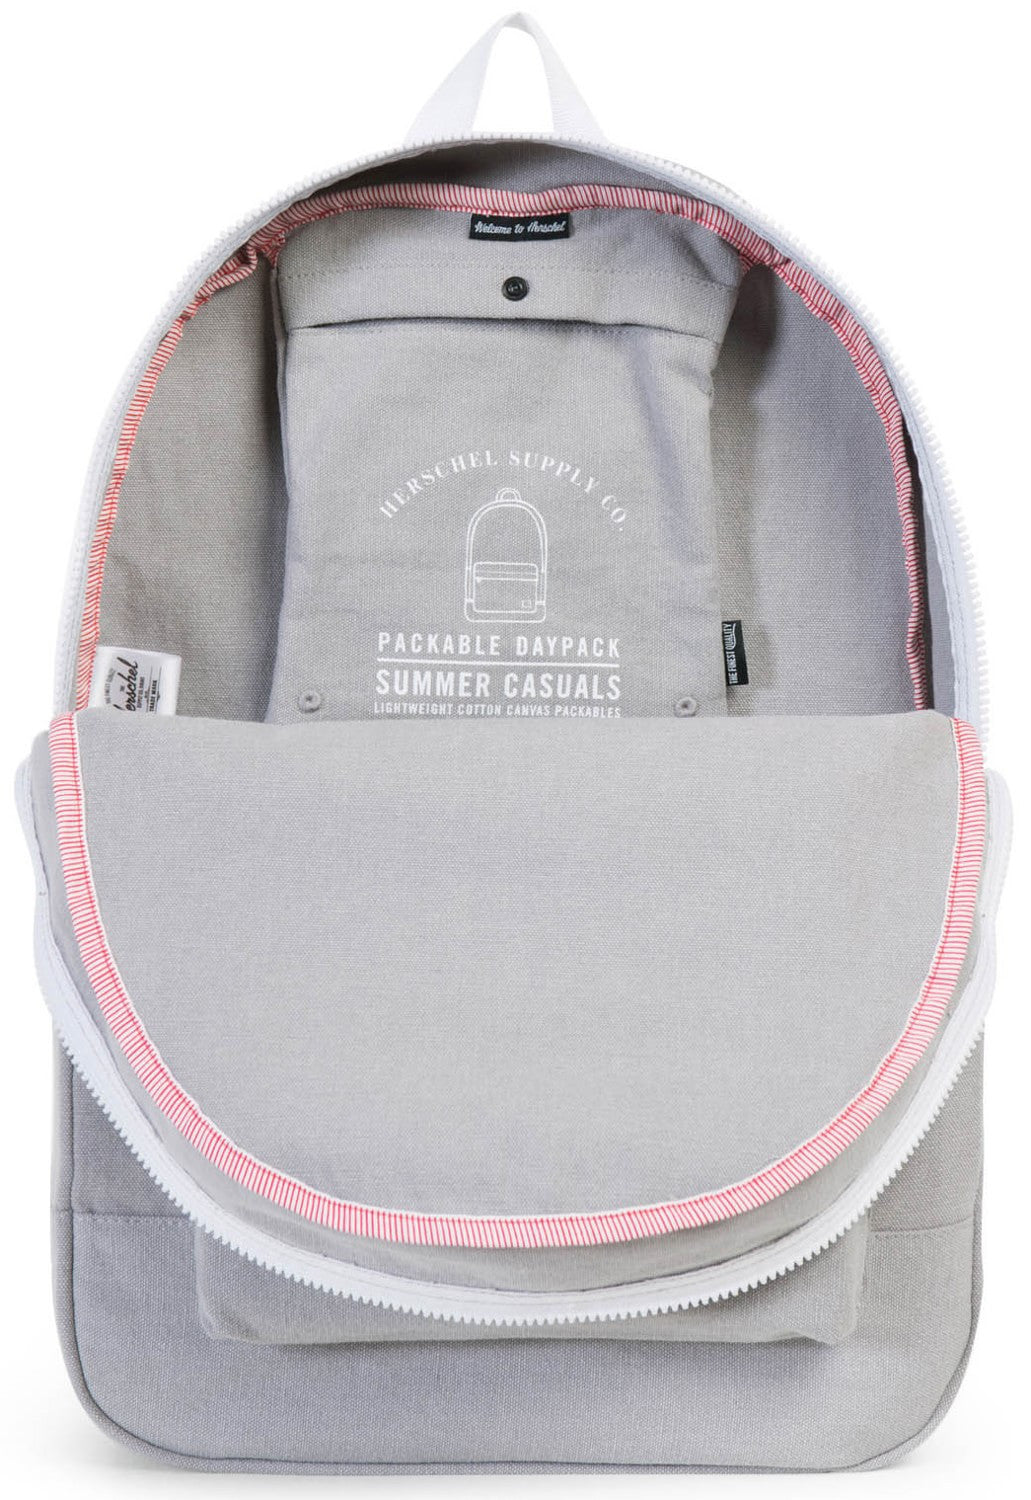 Herschel Supply Co. - Packable Daypack, Grey Canvas - The Giant Peach - 3